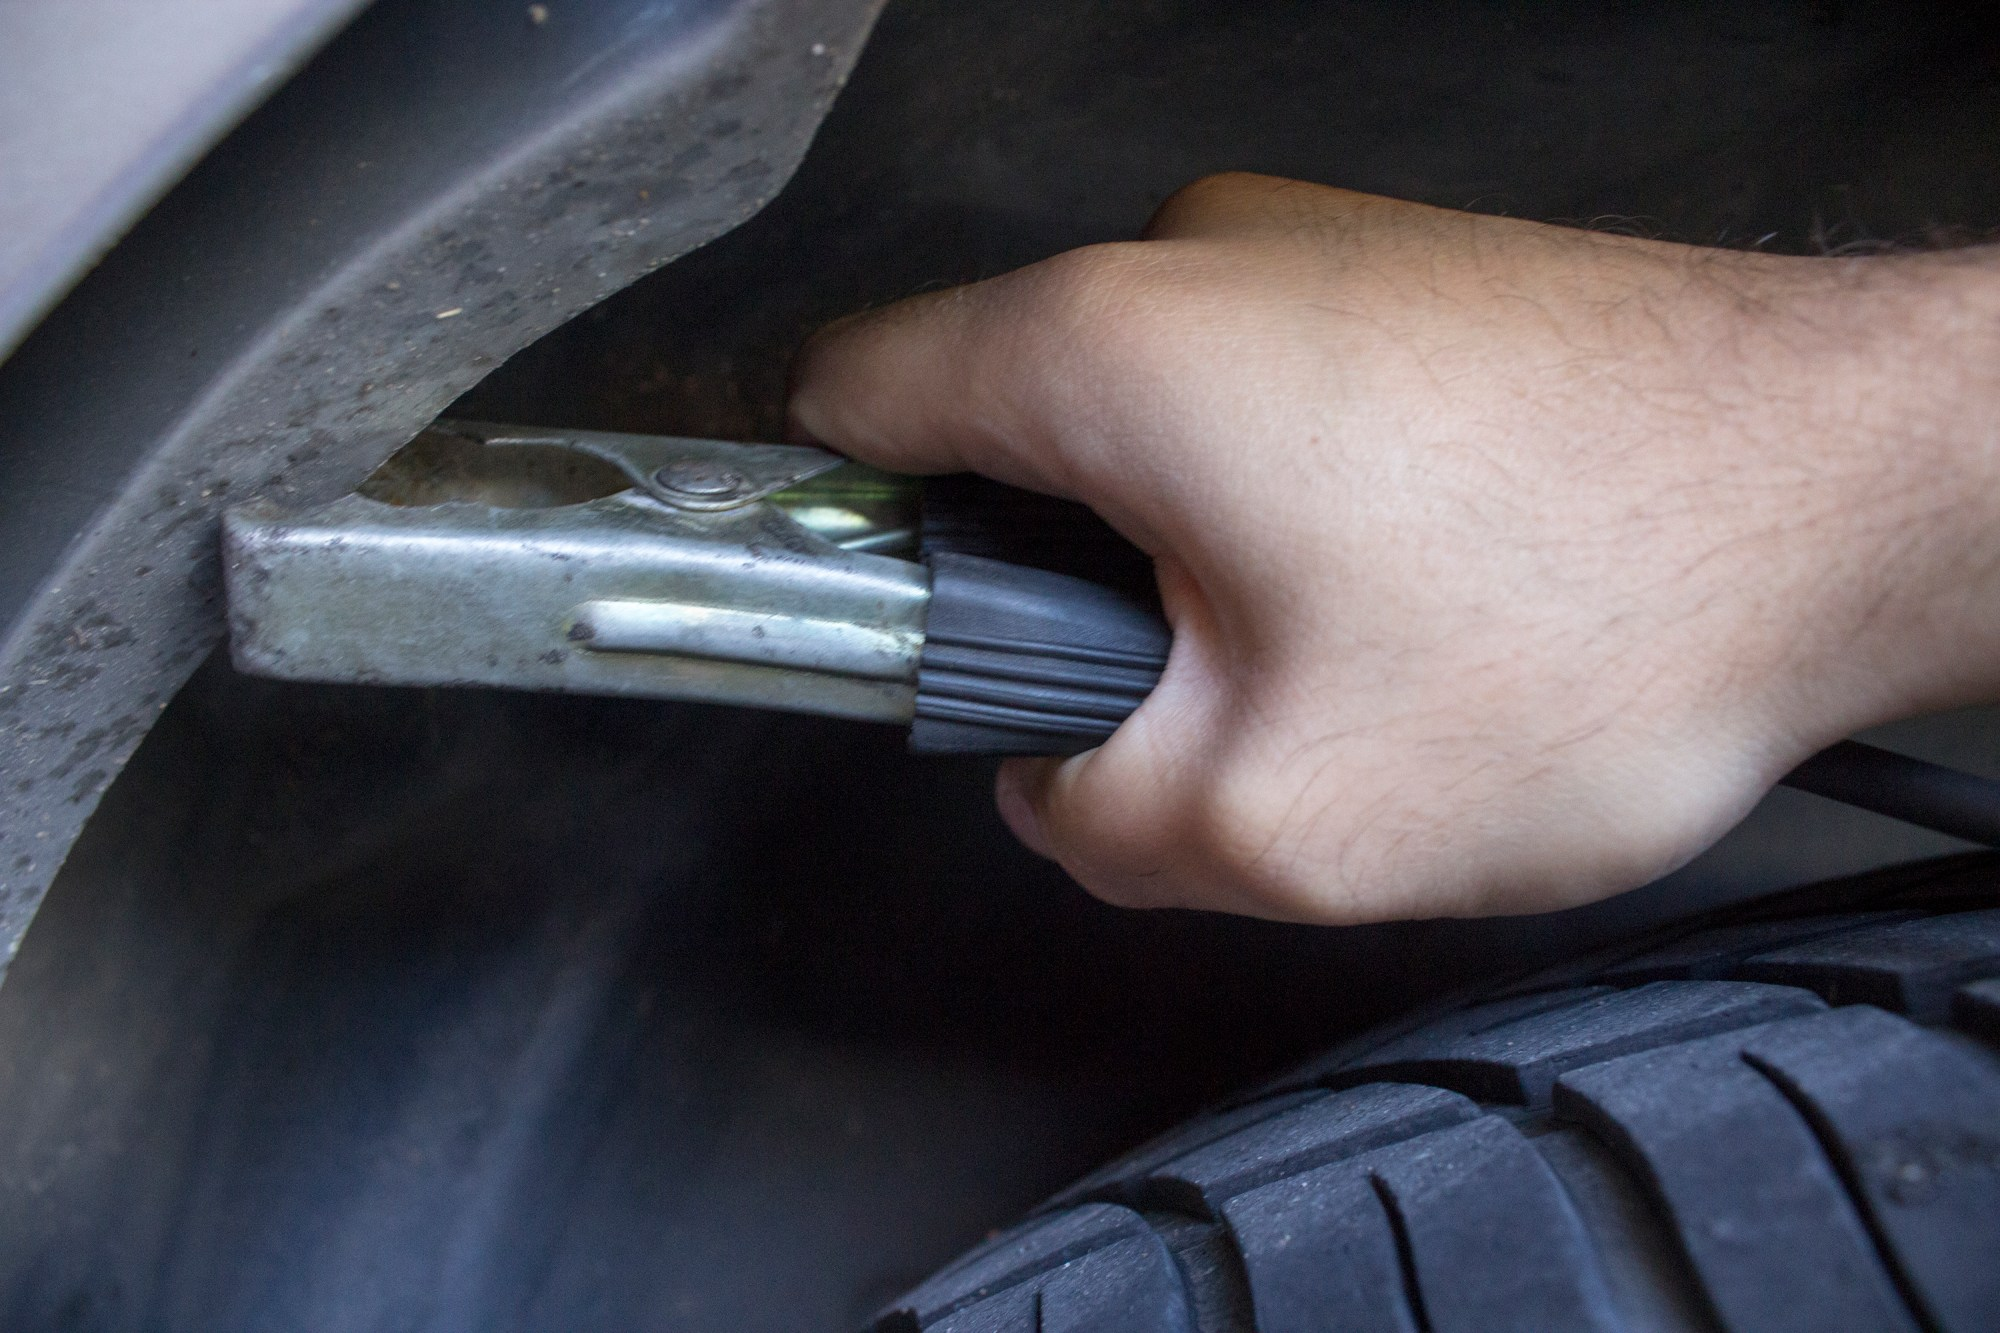 hight resolution of test the grounding wire on the fuel tank s sending unit which is attached to your vehicle s fuel tank to do so attach the negative jumper cable to the